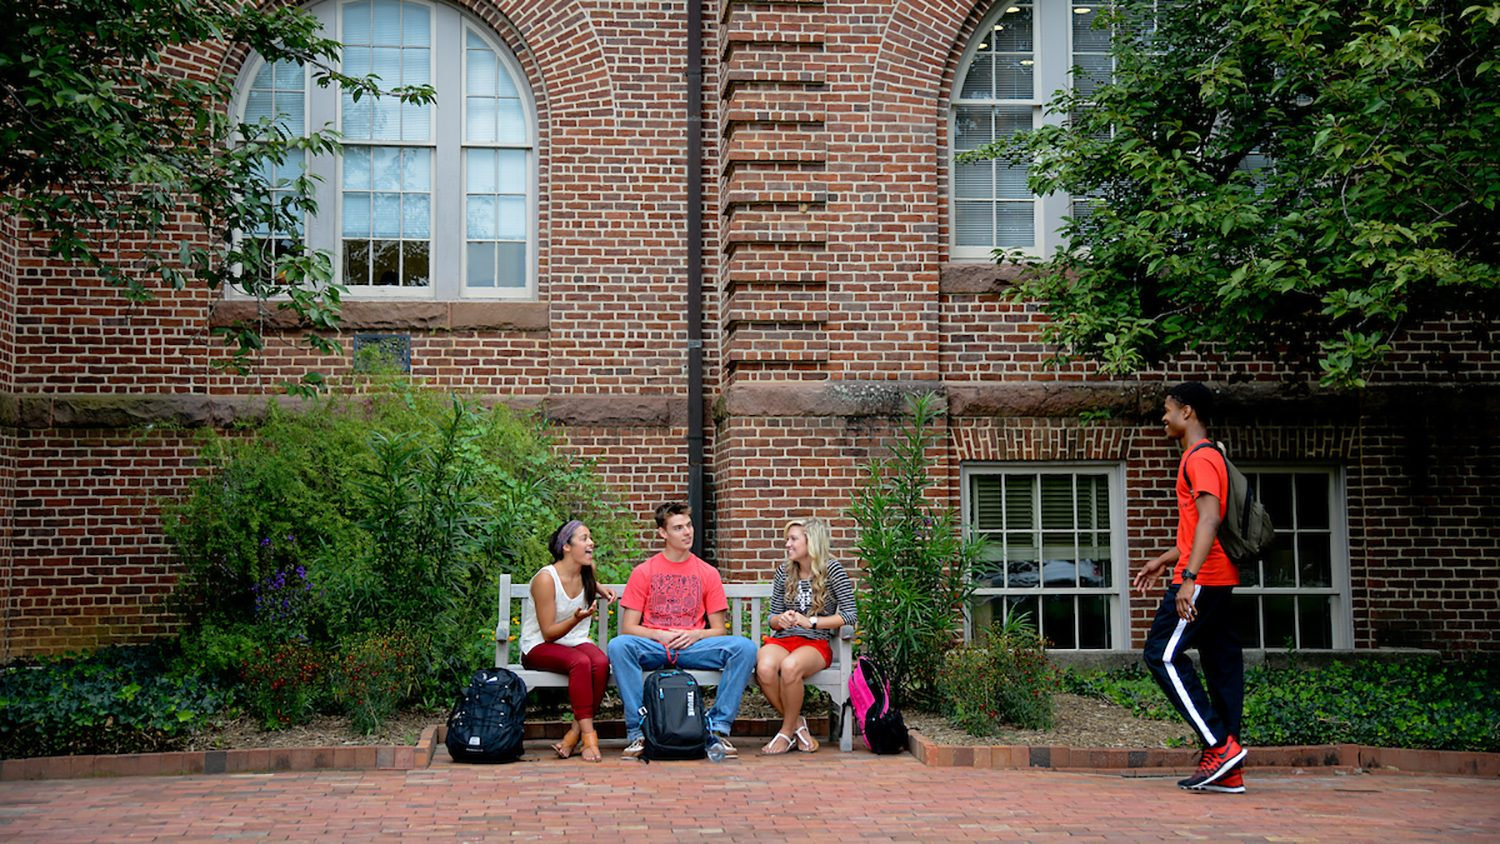 Students chat in front of Holladay Hall on campus.